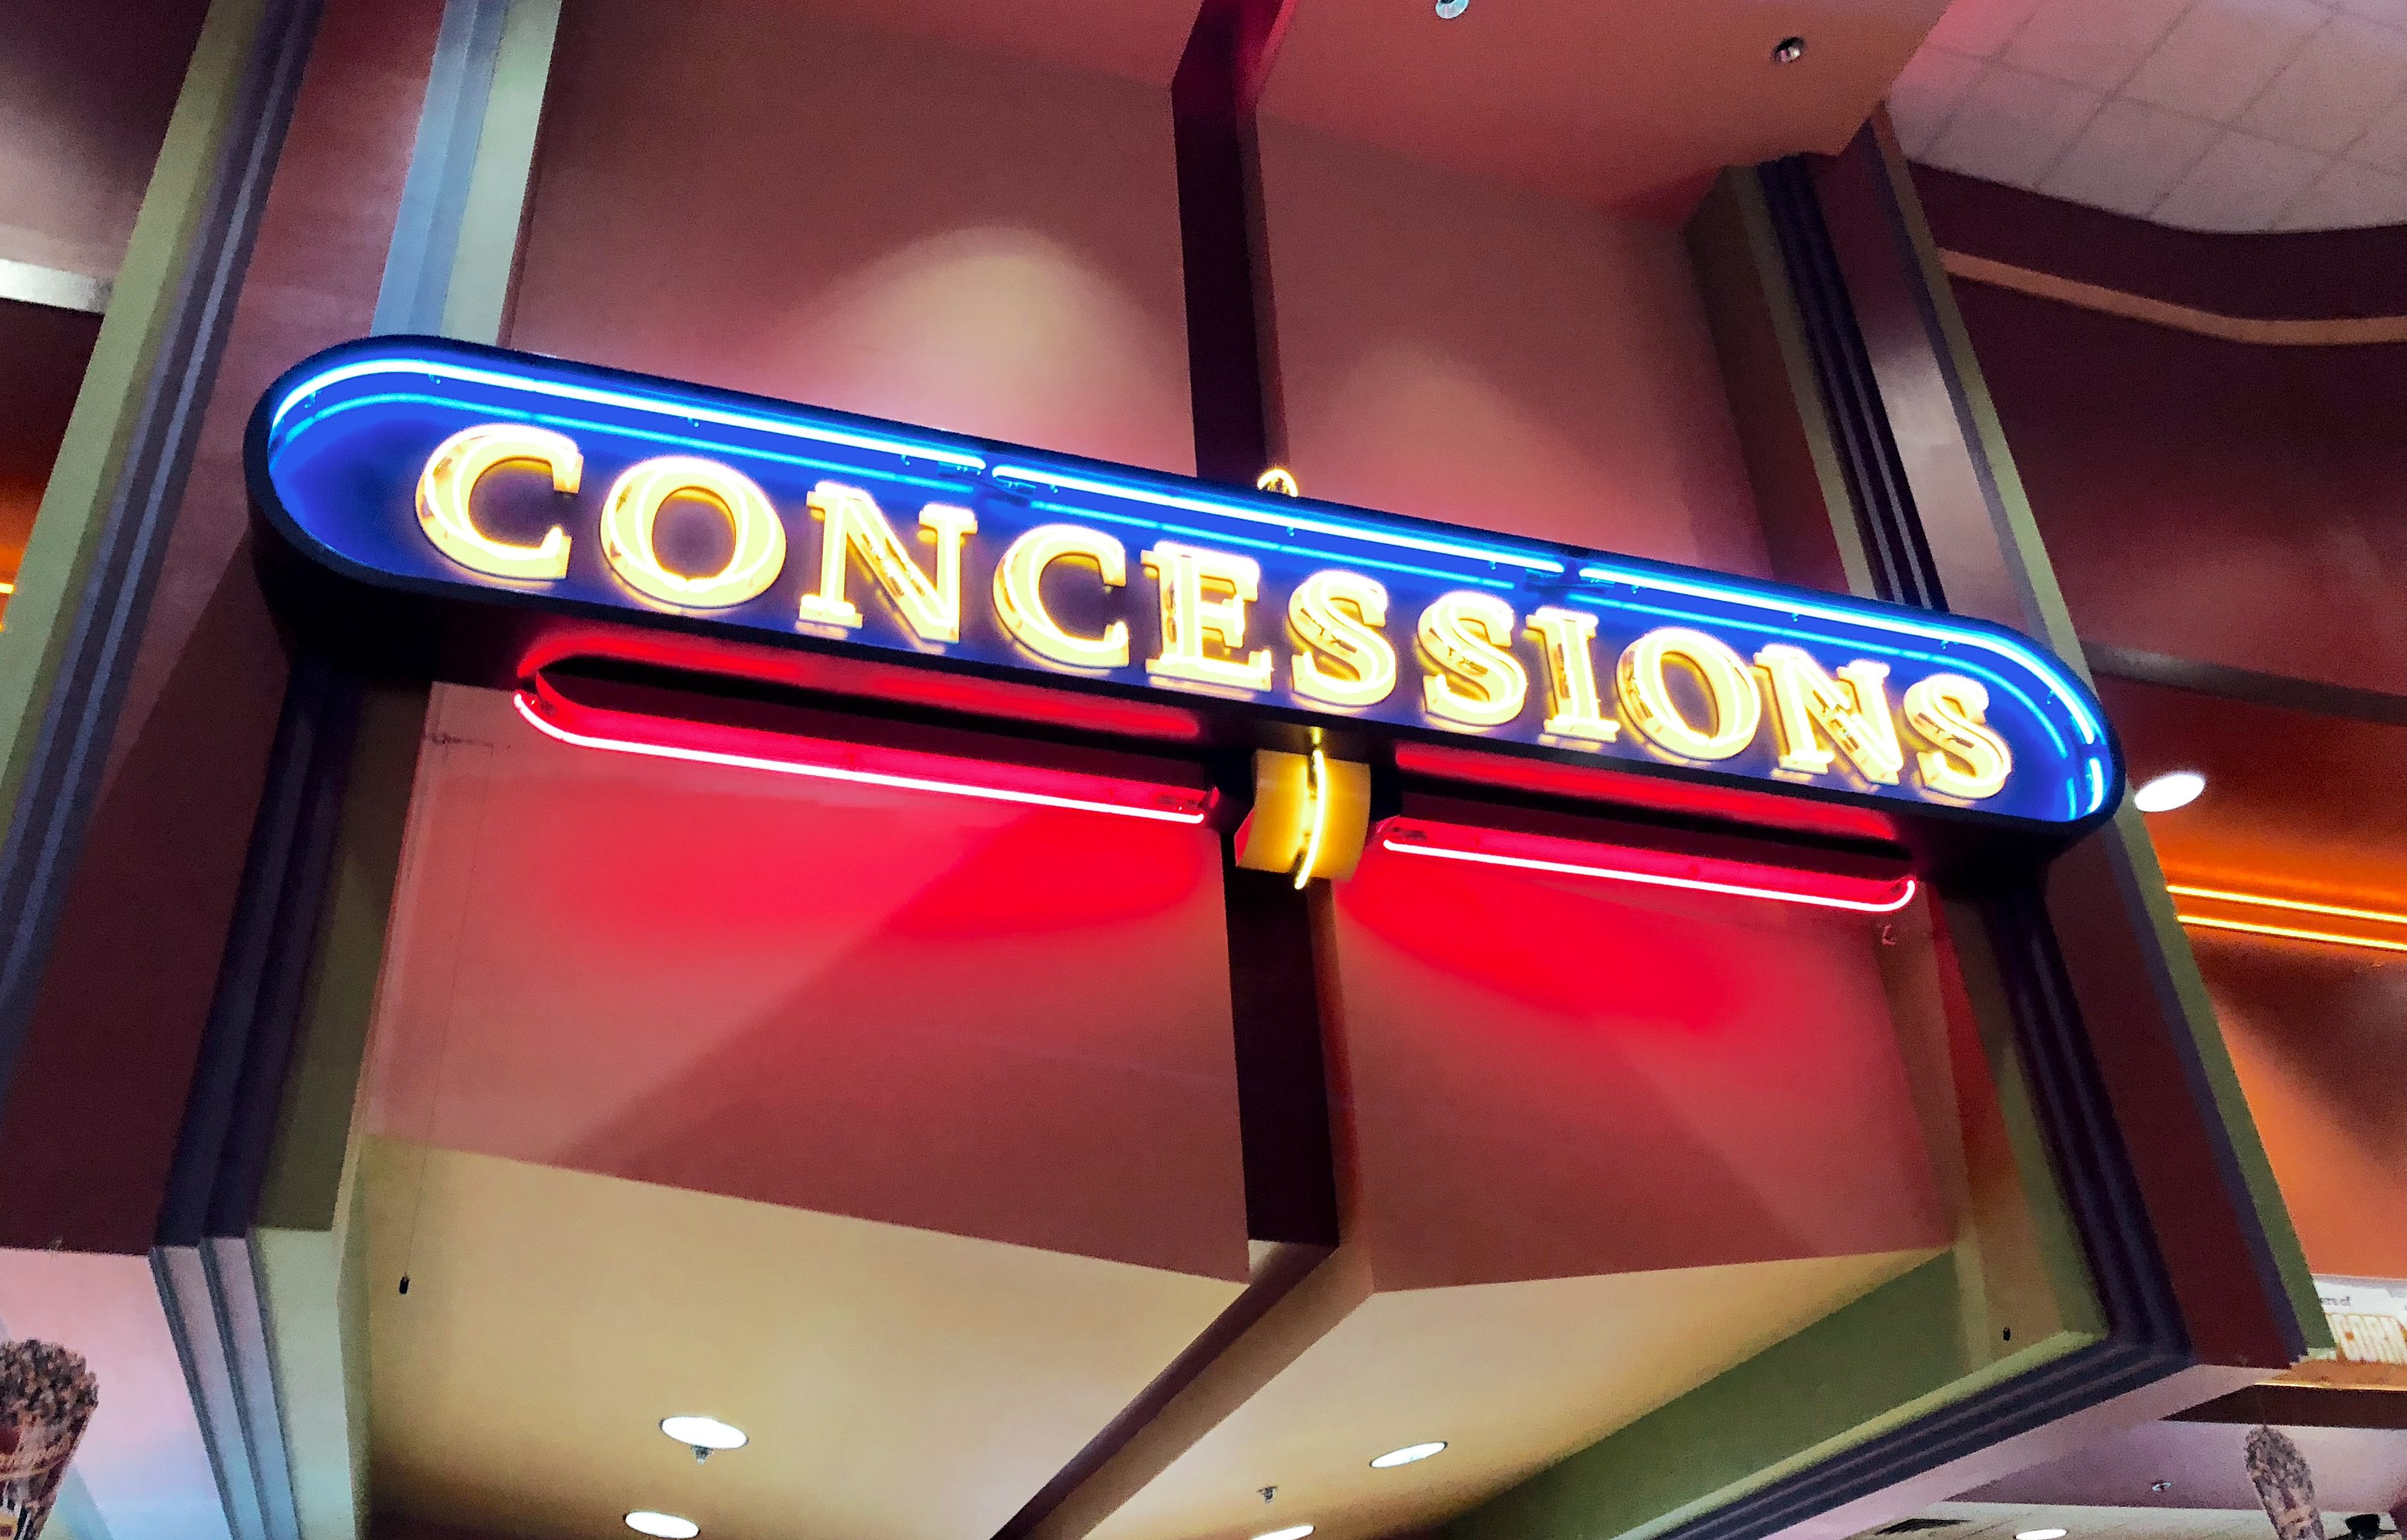 simple movie theater hacks that save money - movie concessions sign